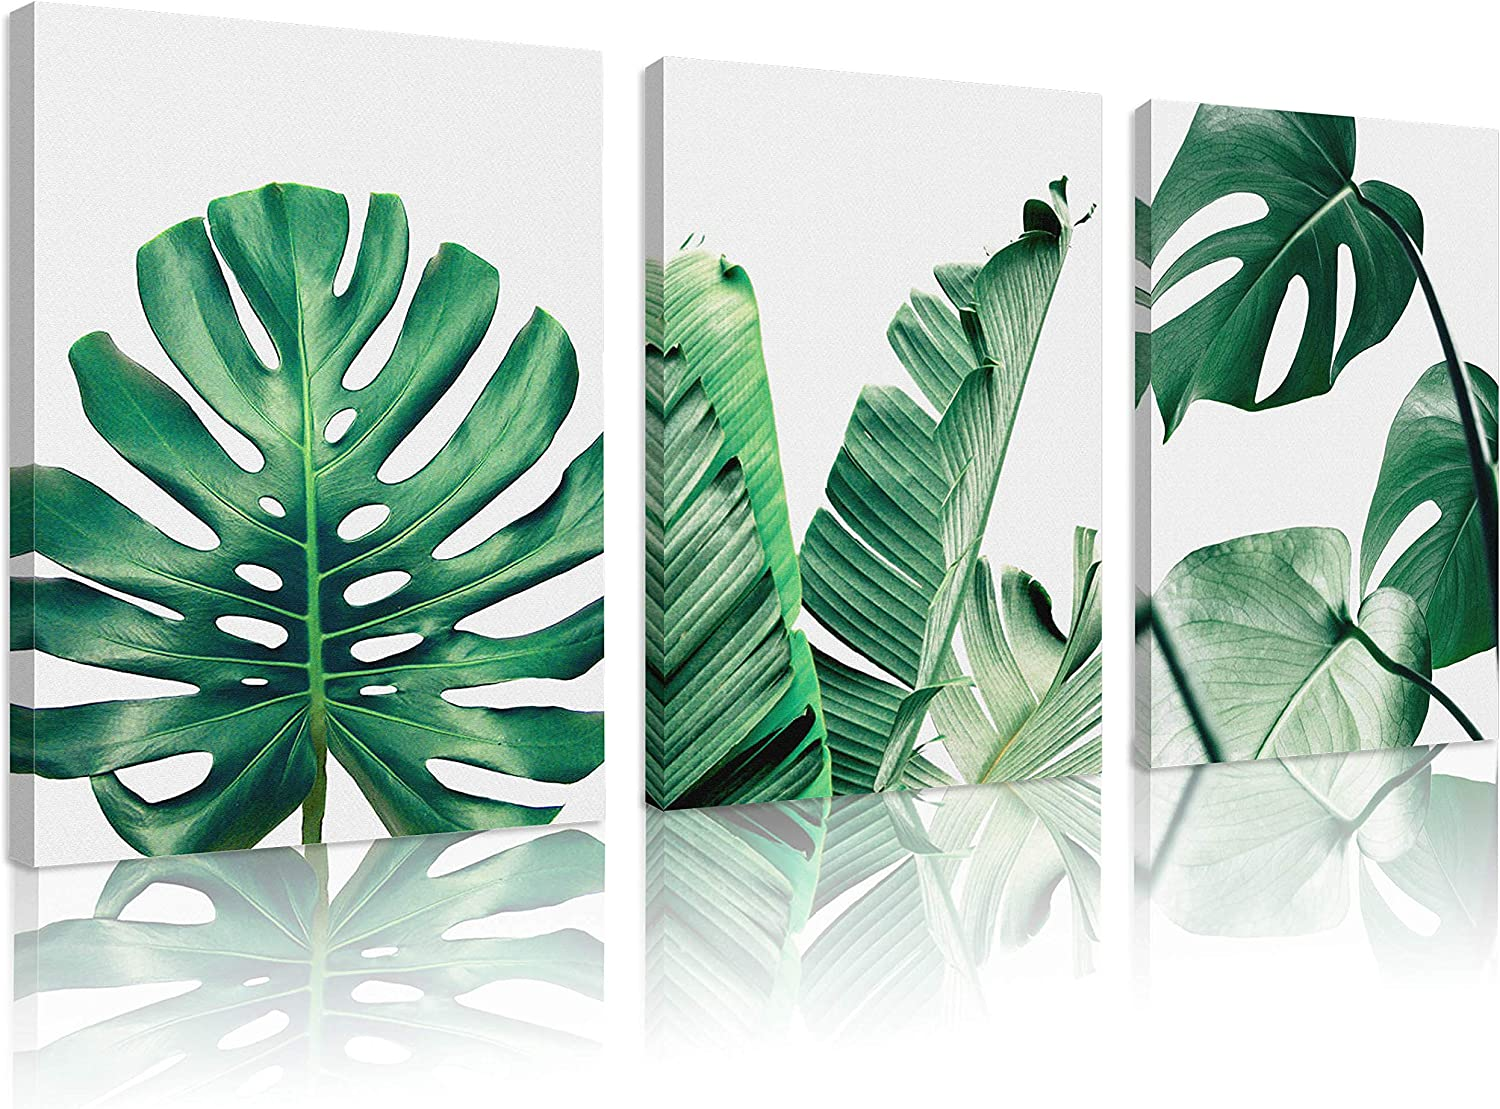 Amazon Com Natural Art Simple Green Leaves Canvas Art Tropical Plants Artwork Minimalist Watercolor Painting Wall Decor For Bathroom Living Room Bedroom Kitchen Canvas Prints 12x16inchesx3pcs Posters Prints Design your everyday with tropical leaves wall tapestries you'll love to hang on the wall or lay on the ground. natural art simple green leaves canvas art tropical plants artwork minimalist watercolor painting wall decor for bathroom living room bedroom kitchen